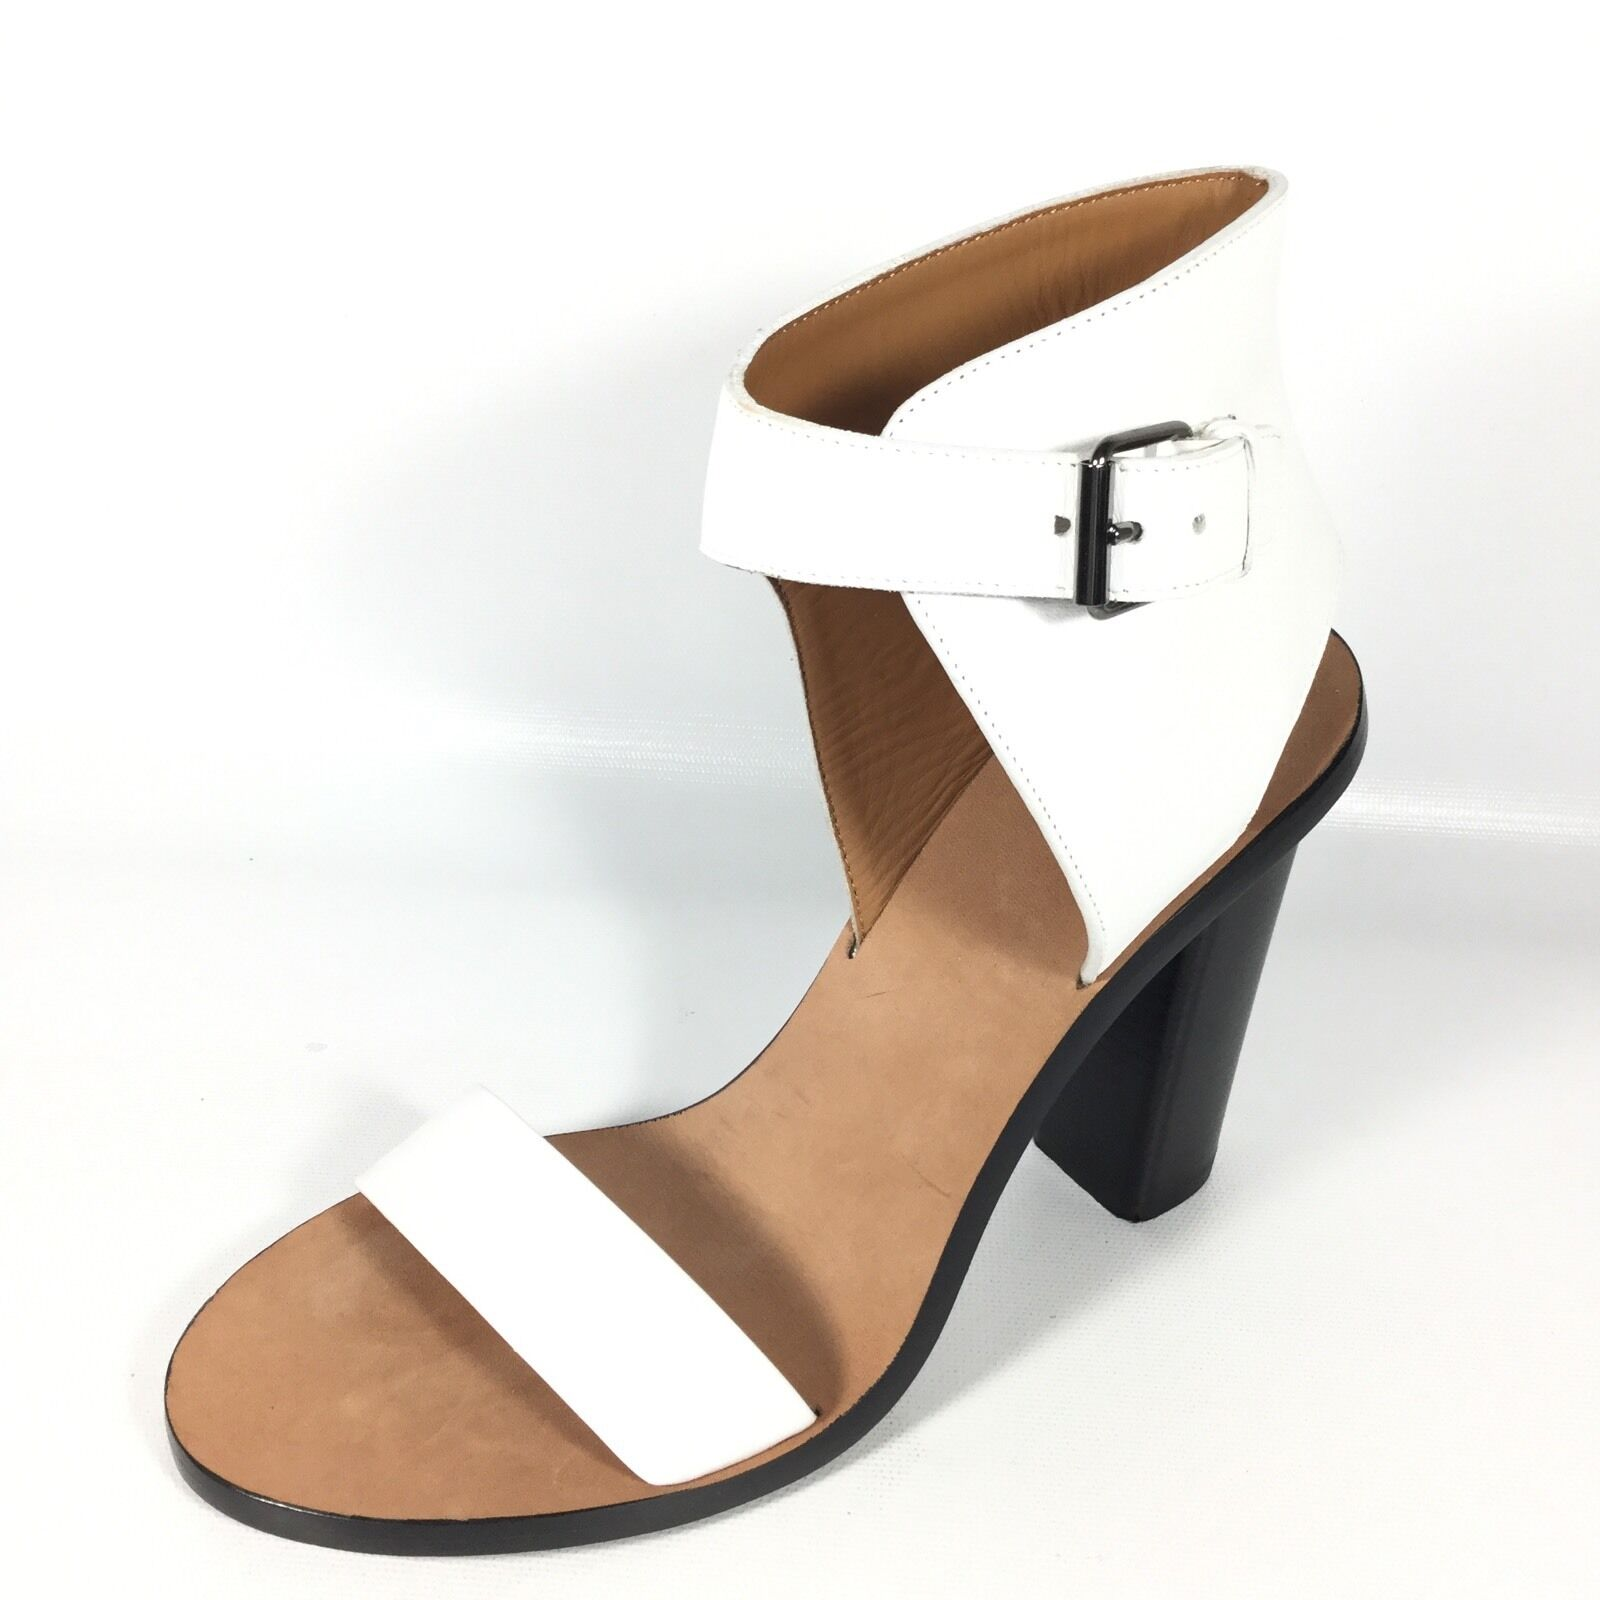 Vince Nicole Womens Size 7.5 M White Leather Ankle-Cuff Heel Sandals.